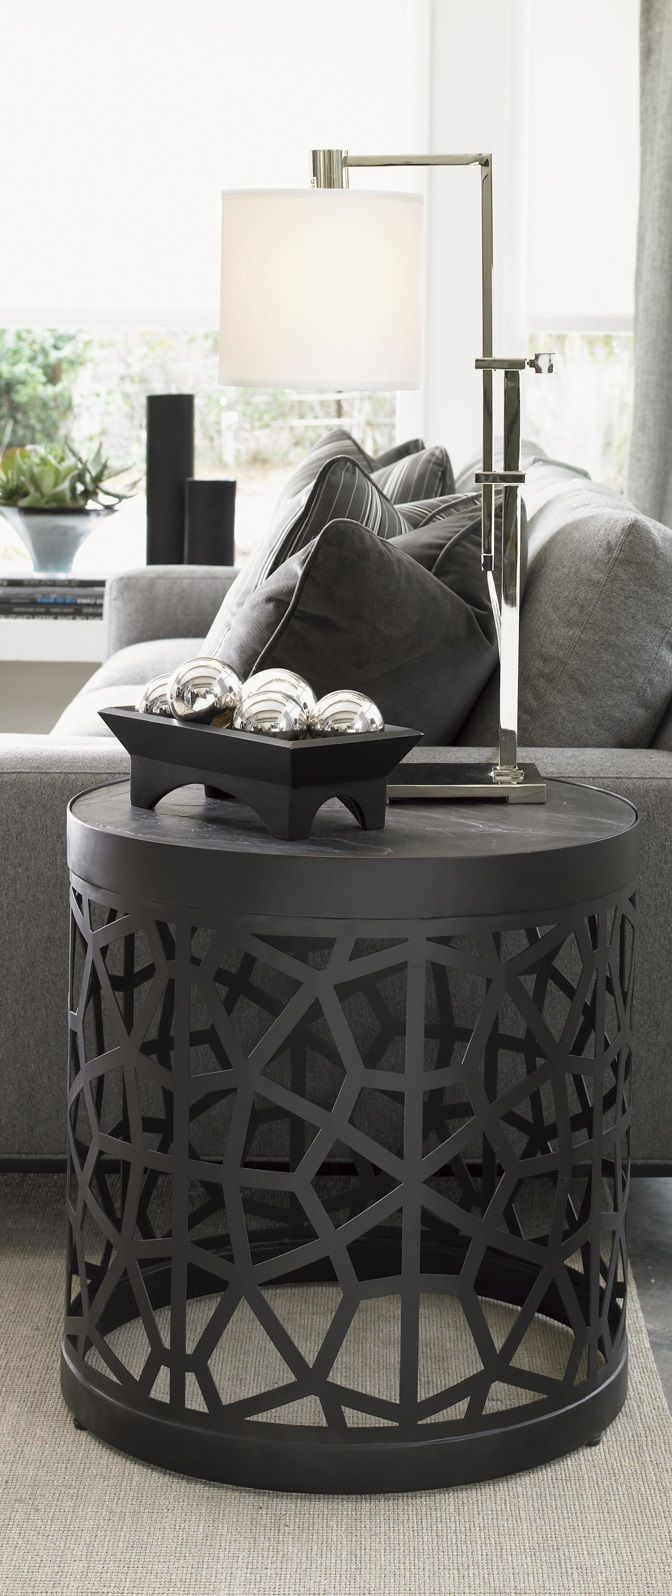 top  best end tables ideas on pinterest  decorating end tables  - side tables accent tables end tables interiordesign casegoodsideas